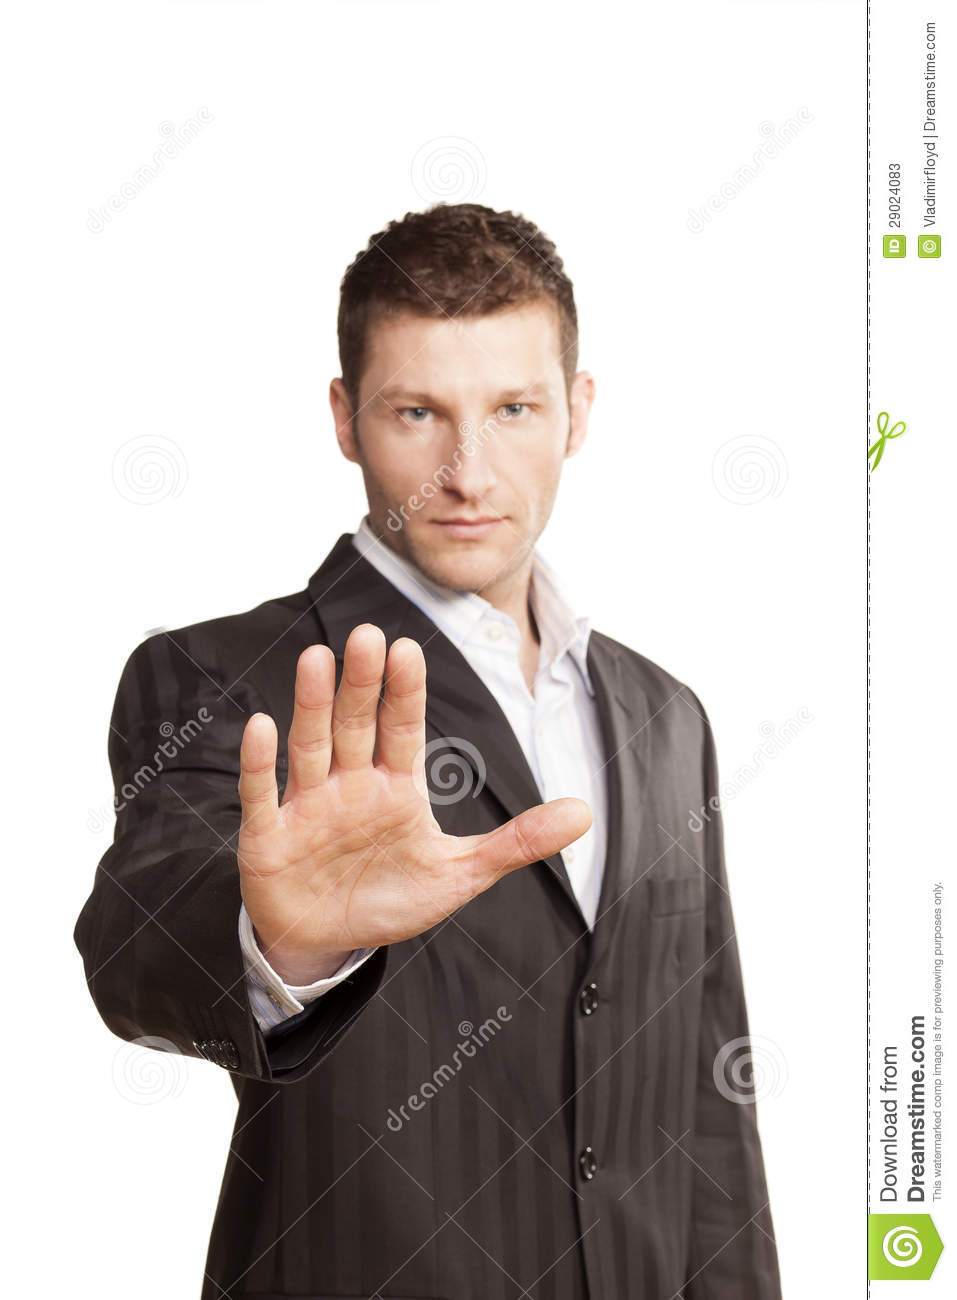 Business Man With Stop Hand Up Stock Image - Image: 29024083